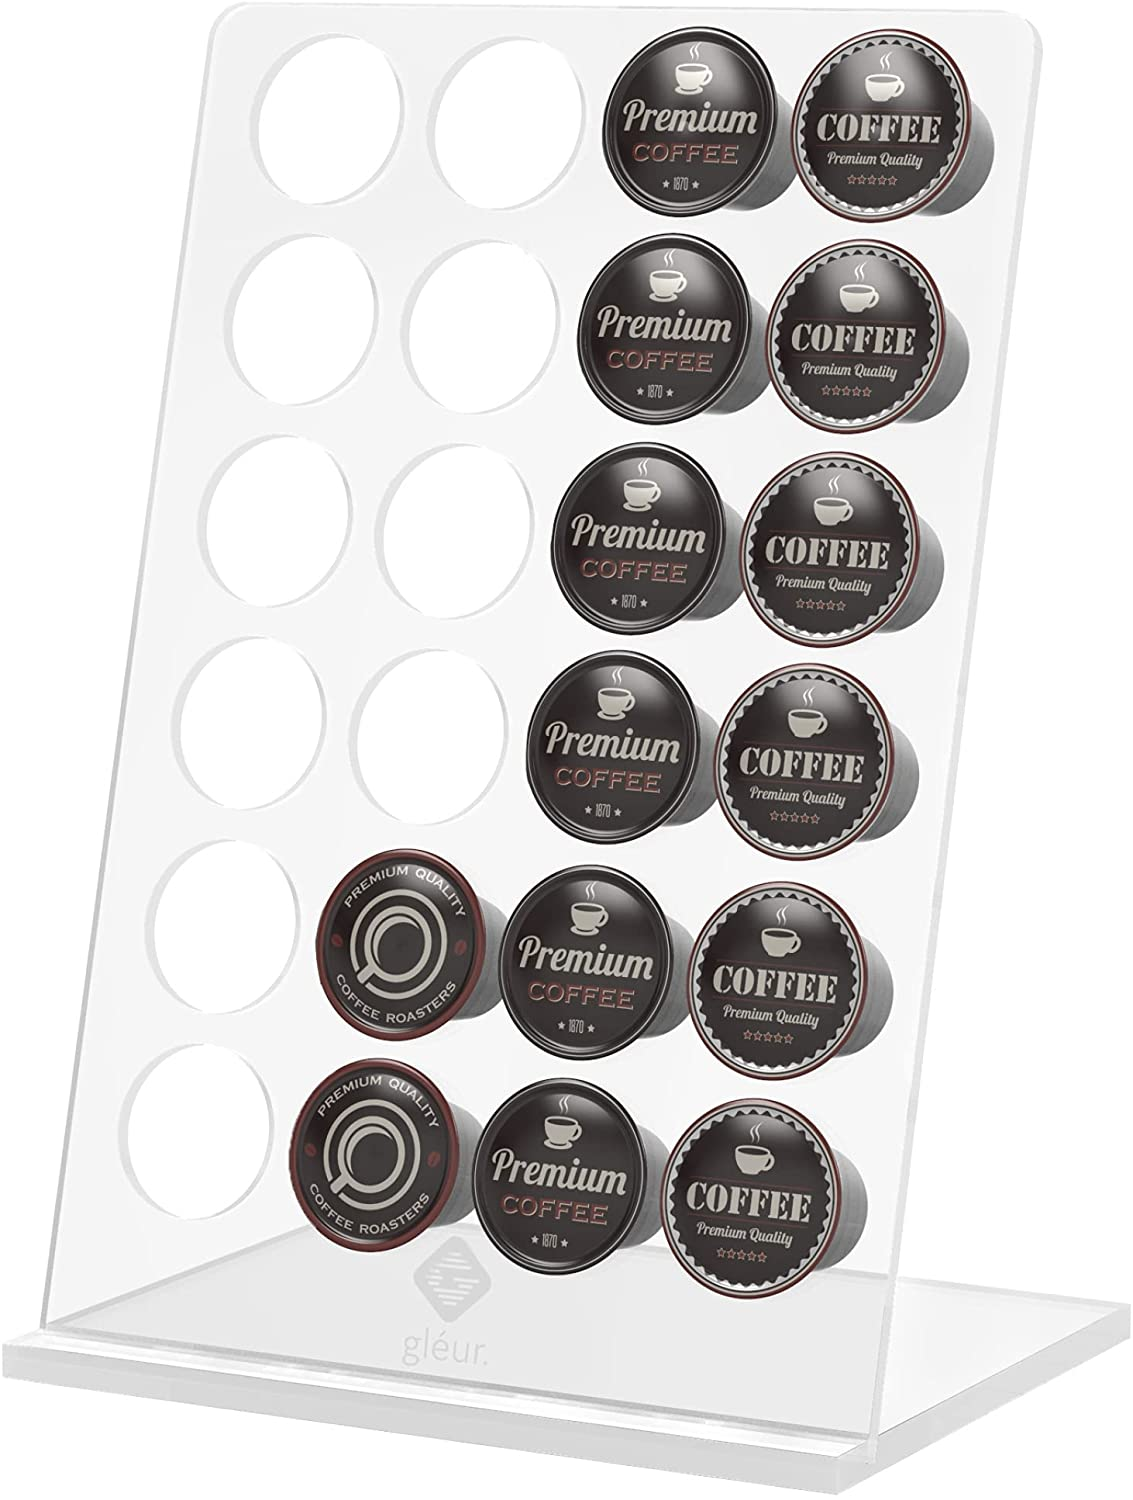 K Cups Coffee Pod Holder - Kcup Acrylic Organizer for Brand new Counter Ranking TOP20